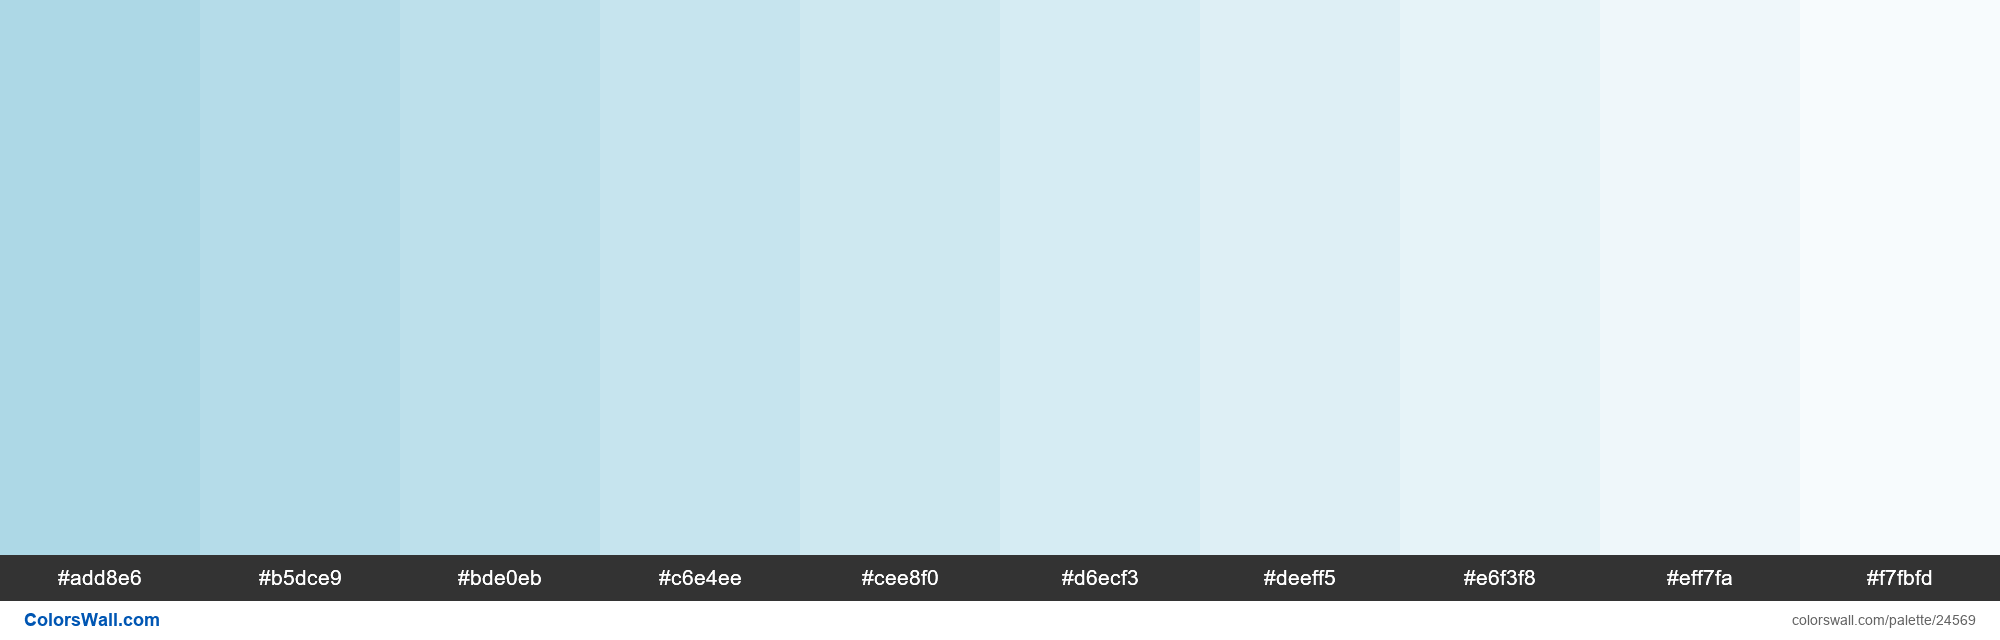 Tints of Light Blue #ADD8E6 hex color - #24569